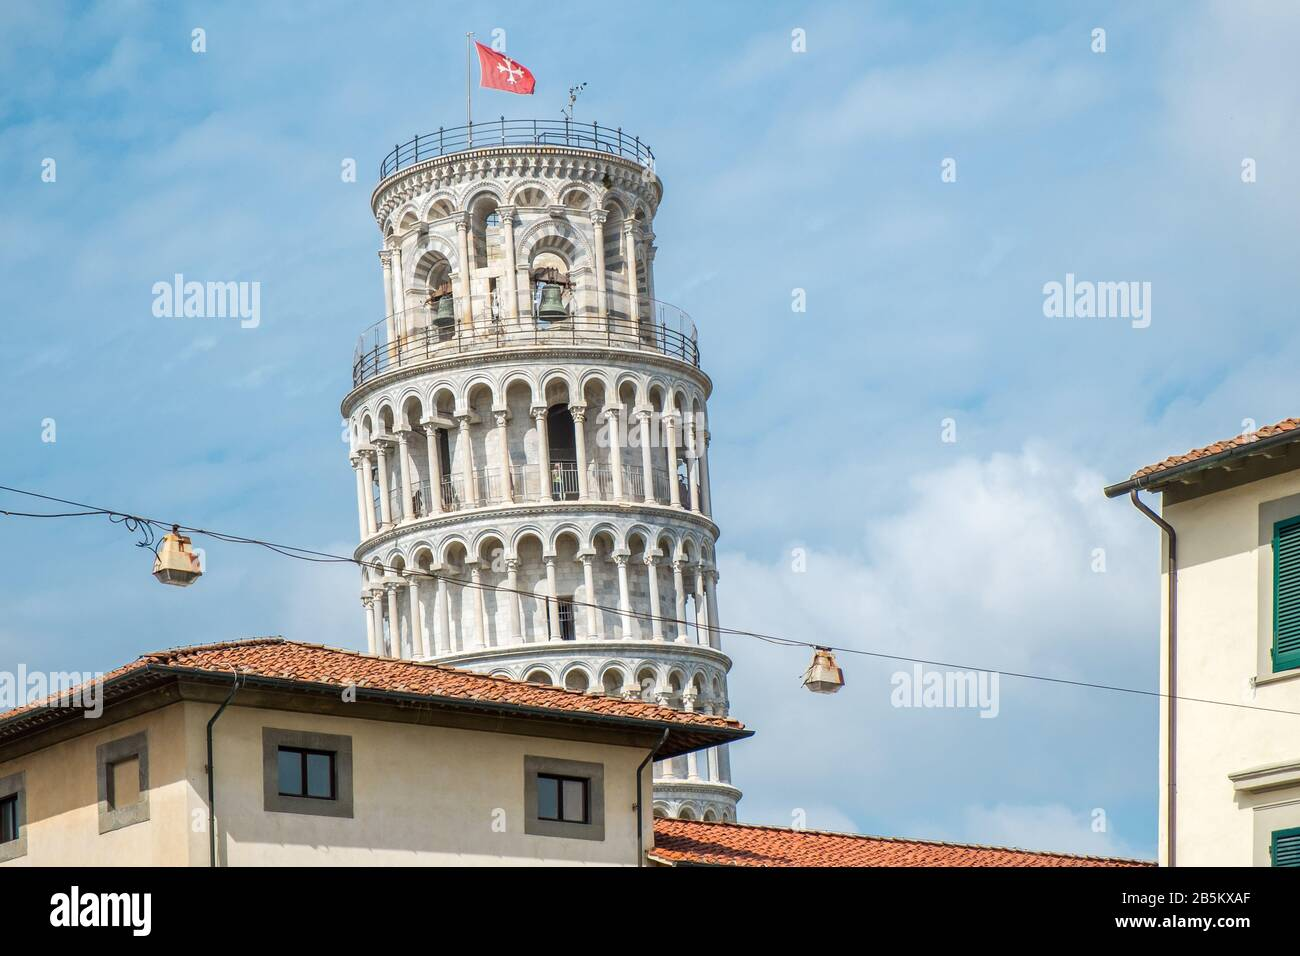 The world famous leaning tower in Pisa, Tuscany.  The construction of the tower was begun in the 12th century. Stock Photo